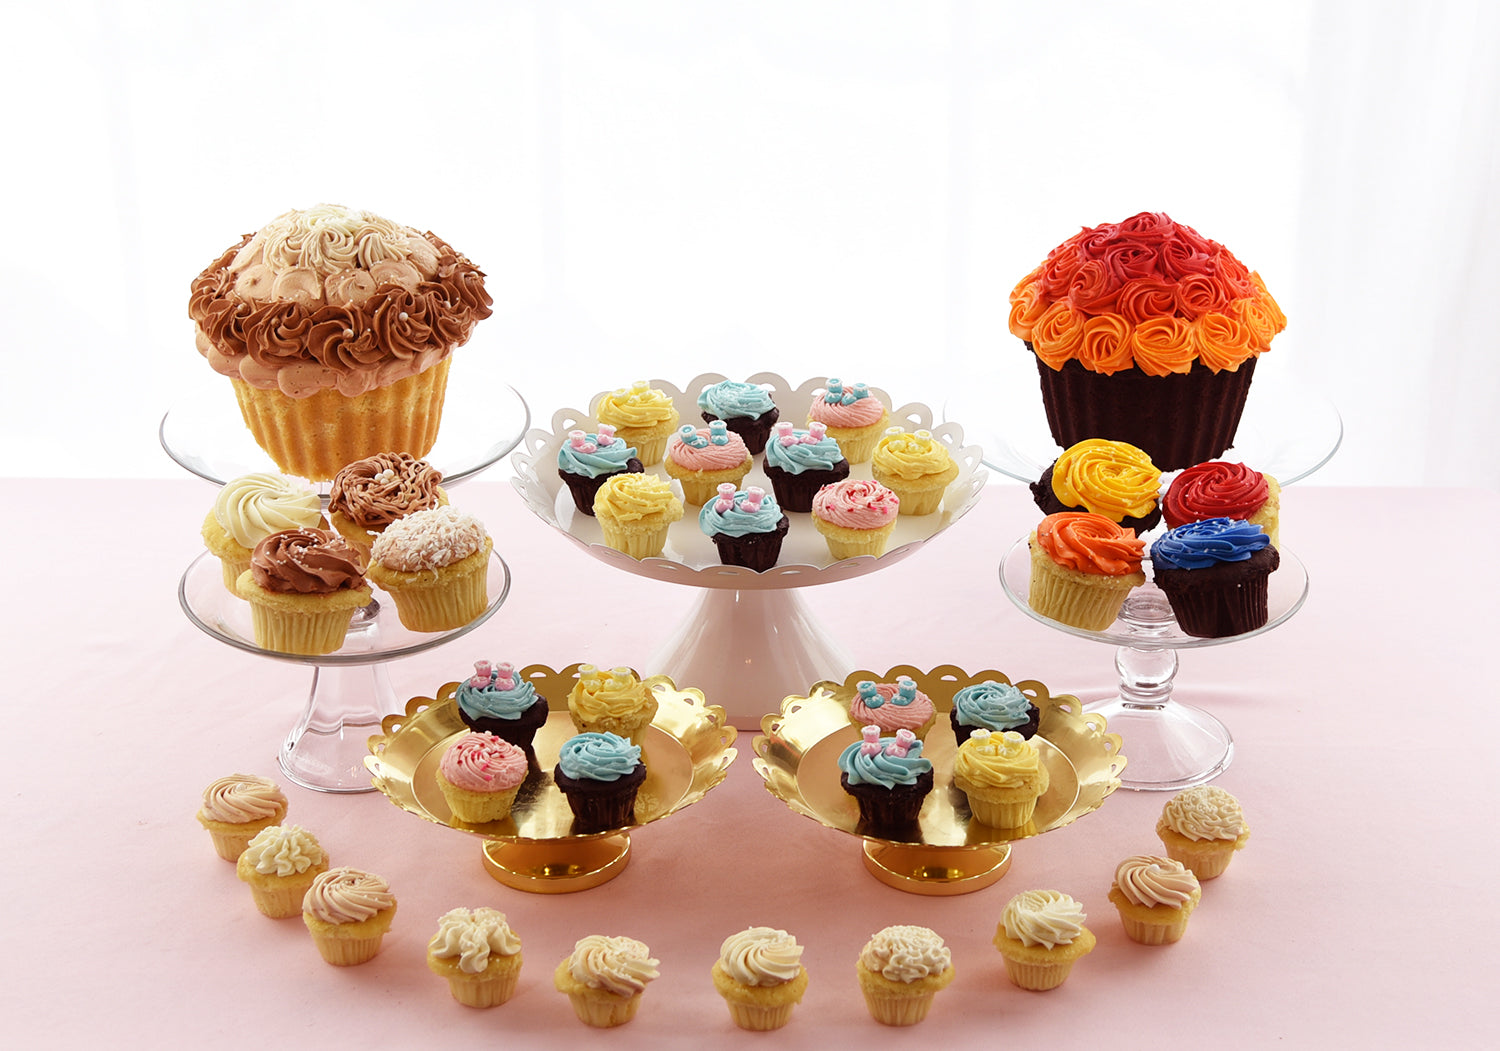 all catering cupcakes